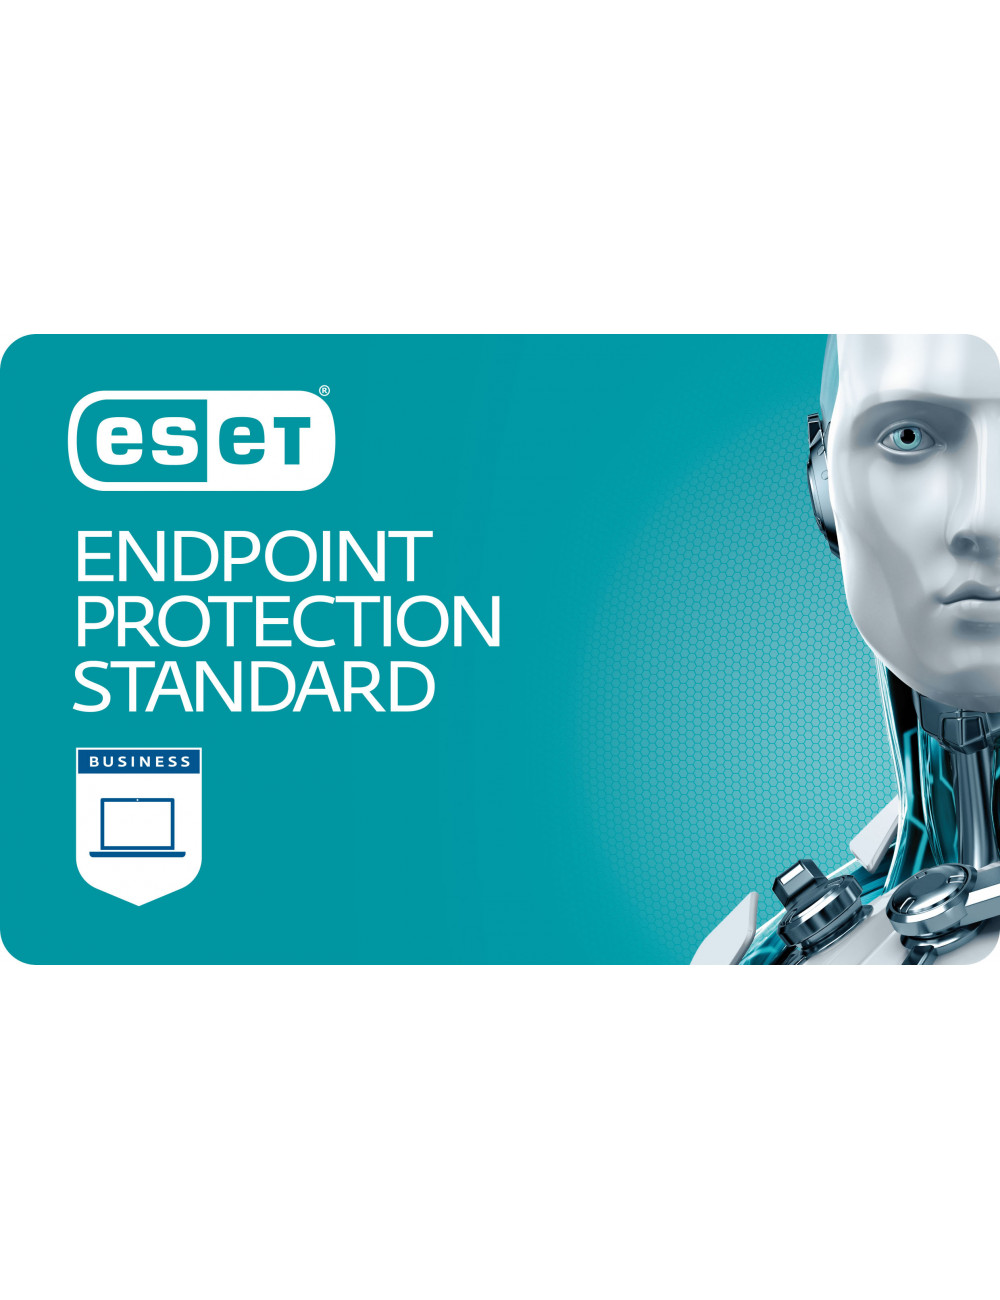 ESET Endpoint Protection Standard (26-49 devices) -  License 1 device - 1 year